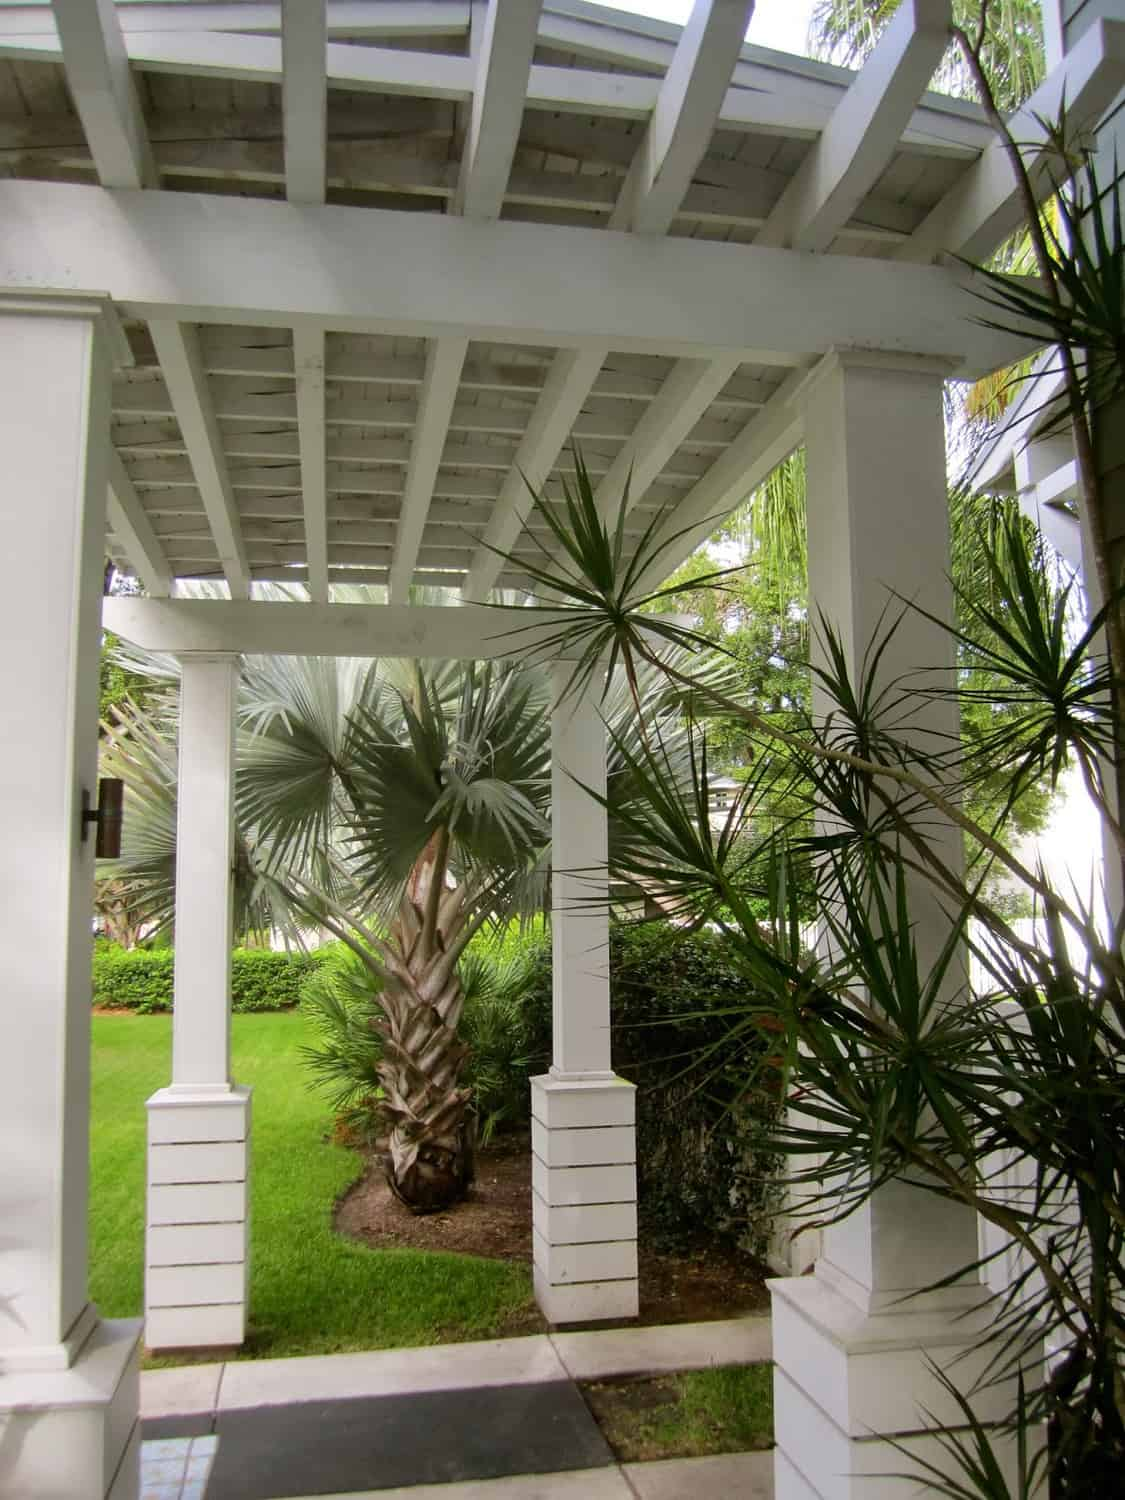 Modern Low Country Style in Tampa - Clic Casual Home on low country style house, chinese home designs, low country living, thai home designs, low country dining room, georgia home designs, low country furniture, low country beach house plans, charleston home designs, low country boil, greek home designs, low country interior decorating, low country landscaping, american home designs, contemporary french home designs, narrow lot home designs, north carolina home designs, low country cottage homes, bungalow home designs, low country floor plans,